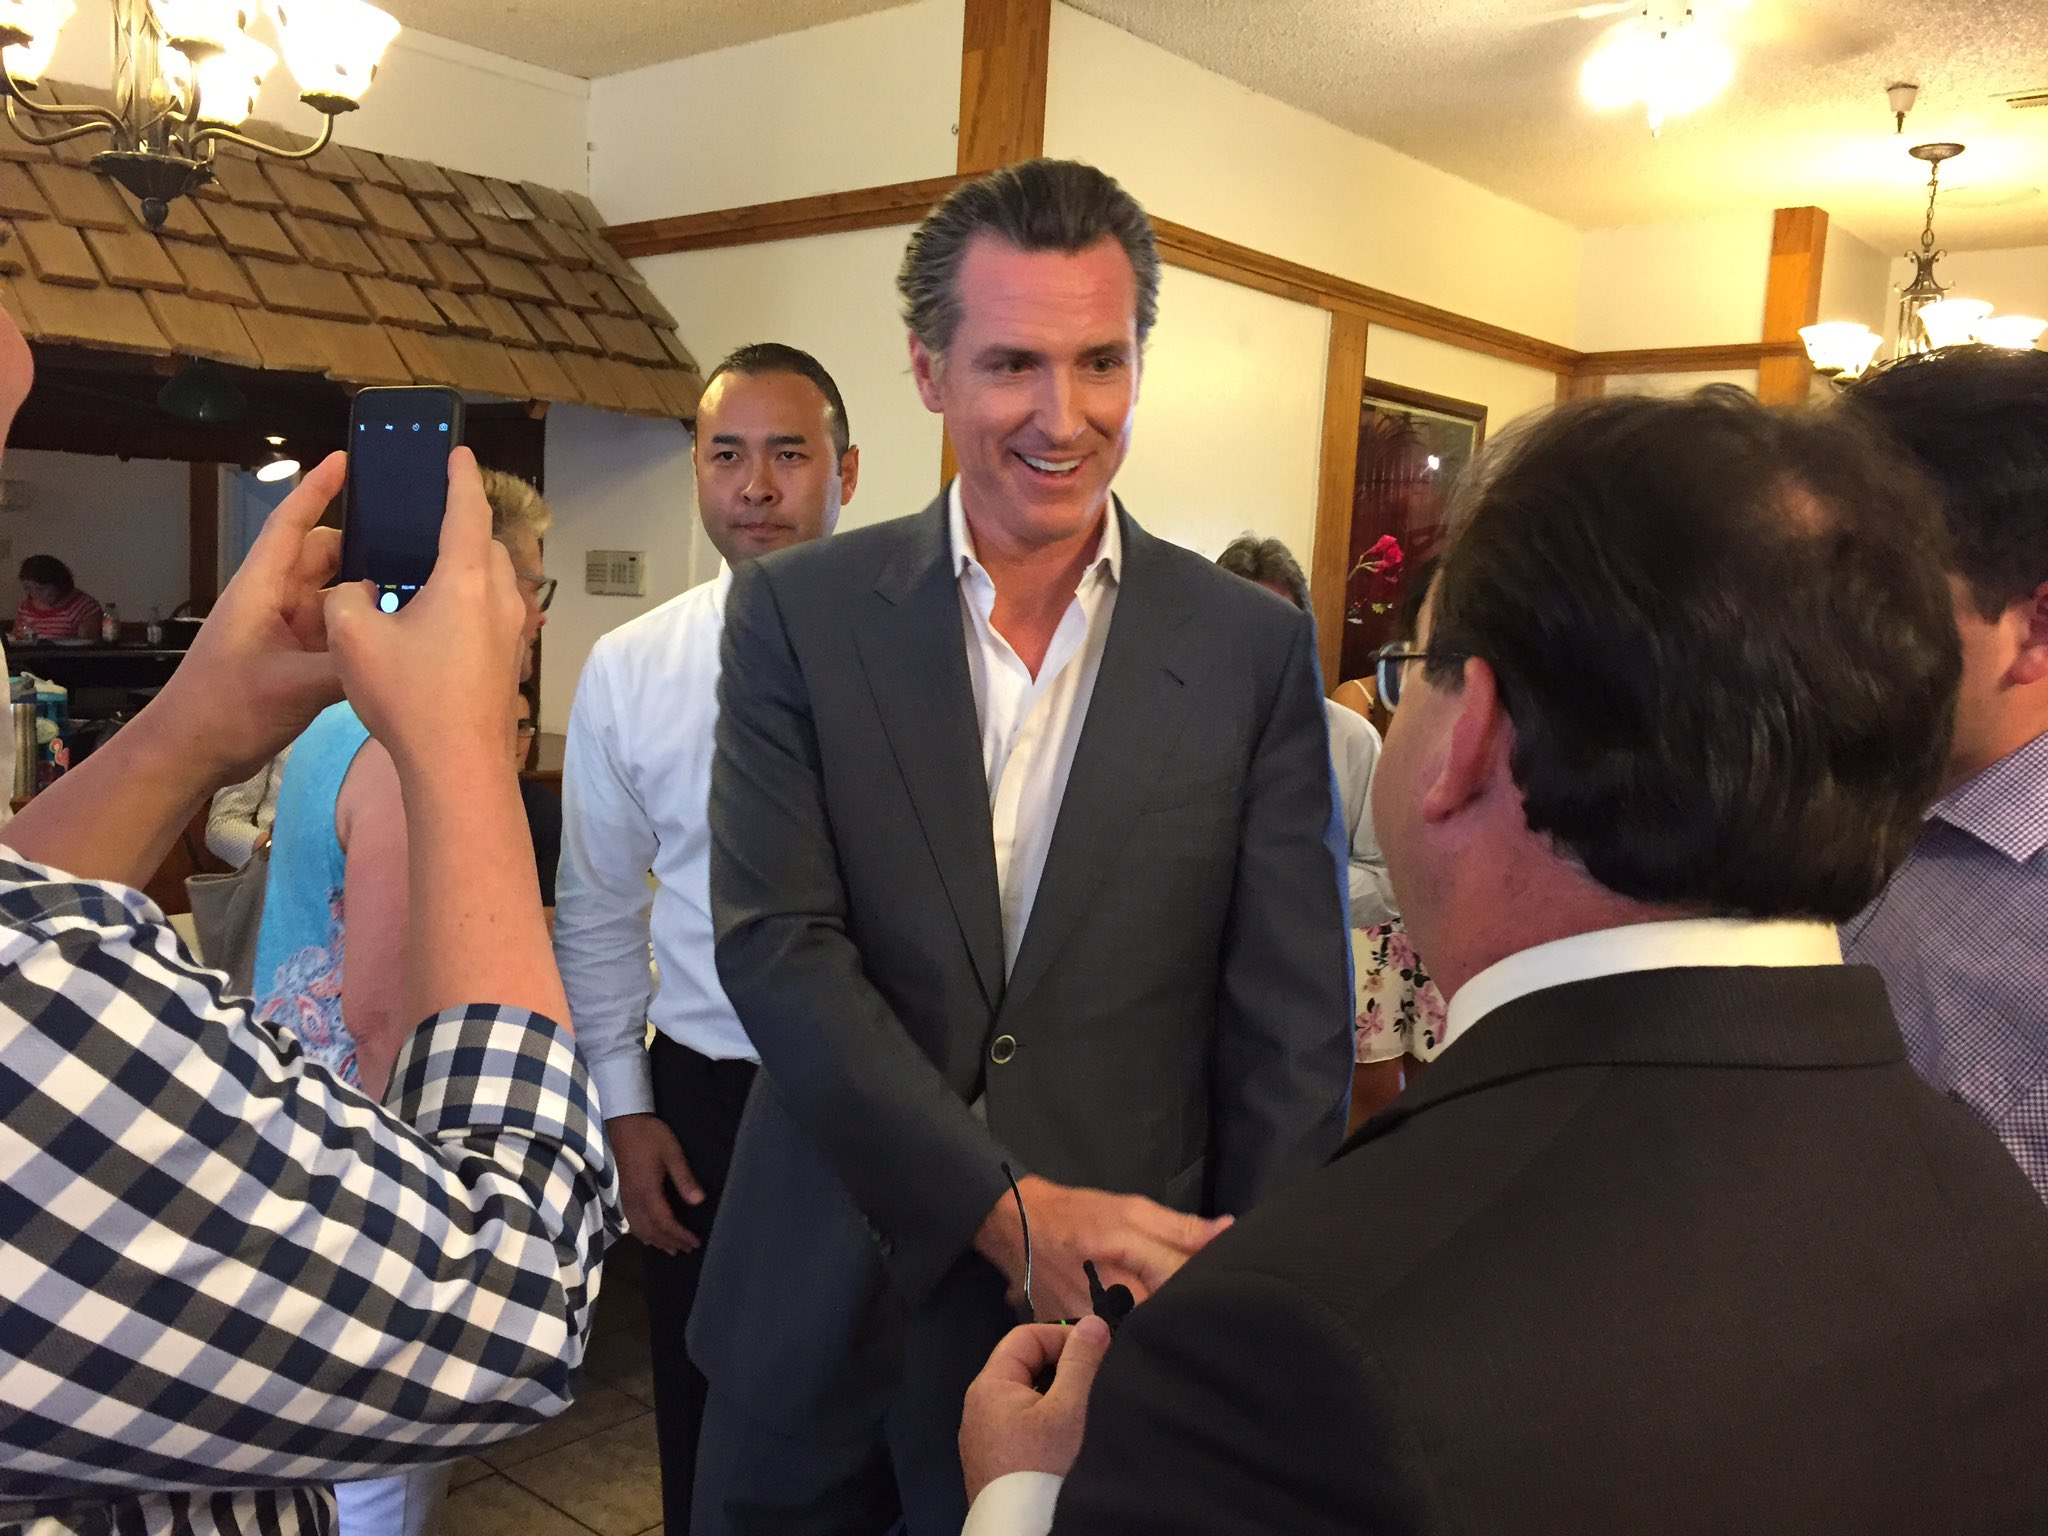 Lt. Gov. Gavin Newsom holds a meet-and-greet at Tuolumne Hall in Fresno on Tuesday as he campaigns for governor across the Central Valley. (Phil Willon / Los Angeles Times)